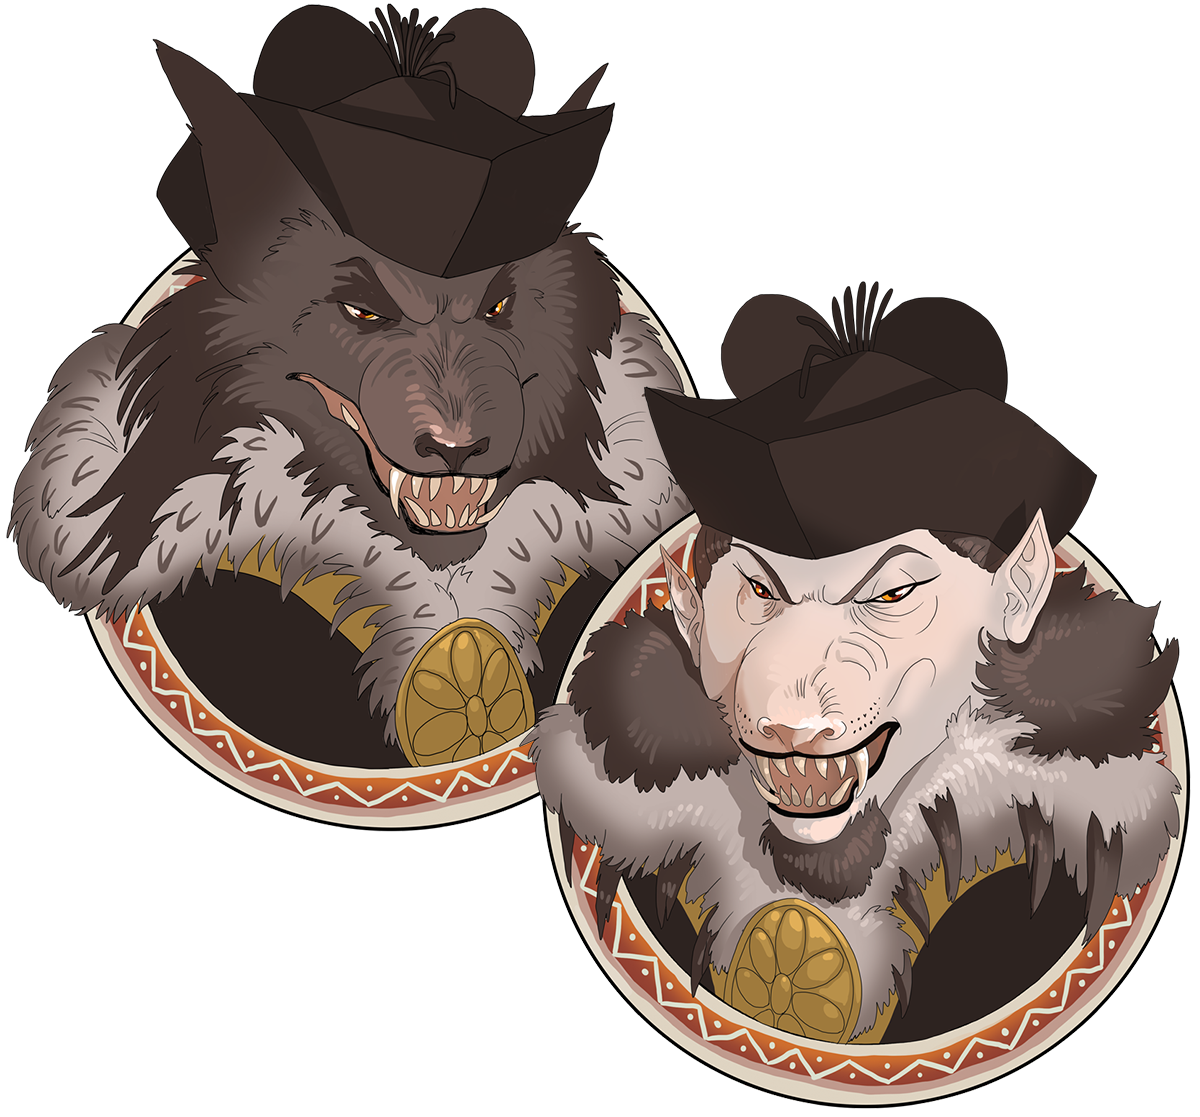 Digital art of a character design based off of the medieval cynocephalus, or dog-headed man. (No relation to Dav Pilkey). The men are both dressed in fine furs with felt hats and wear snarls on their muzzled faces. The only difference between the two is that one man is entirely wolflike, fur and all, while the other man has no fur on their face, leading to a very bald complexion.